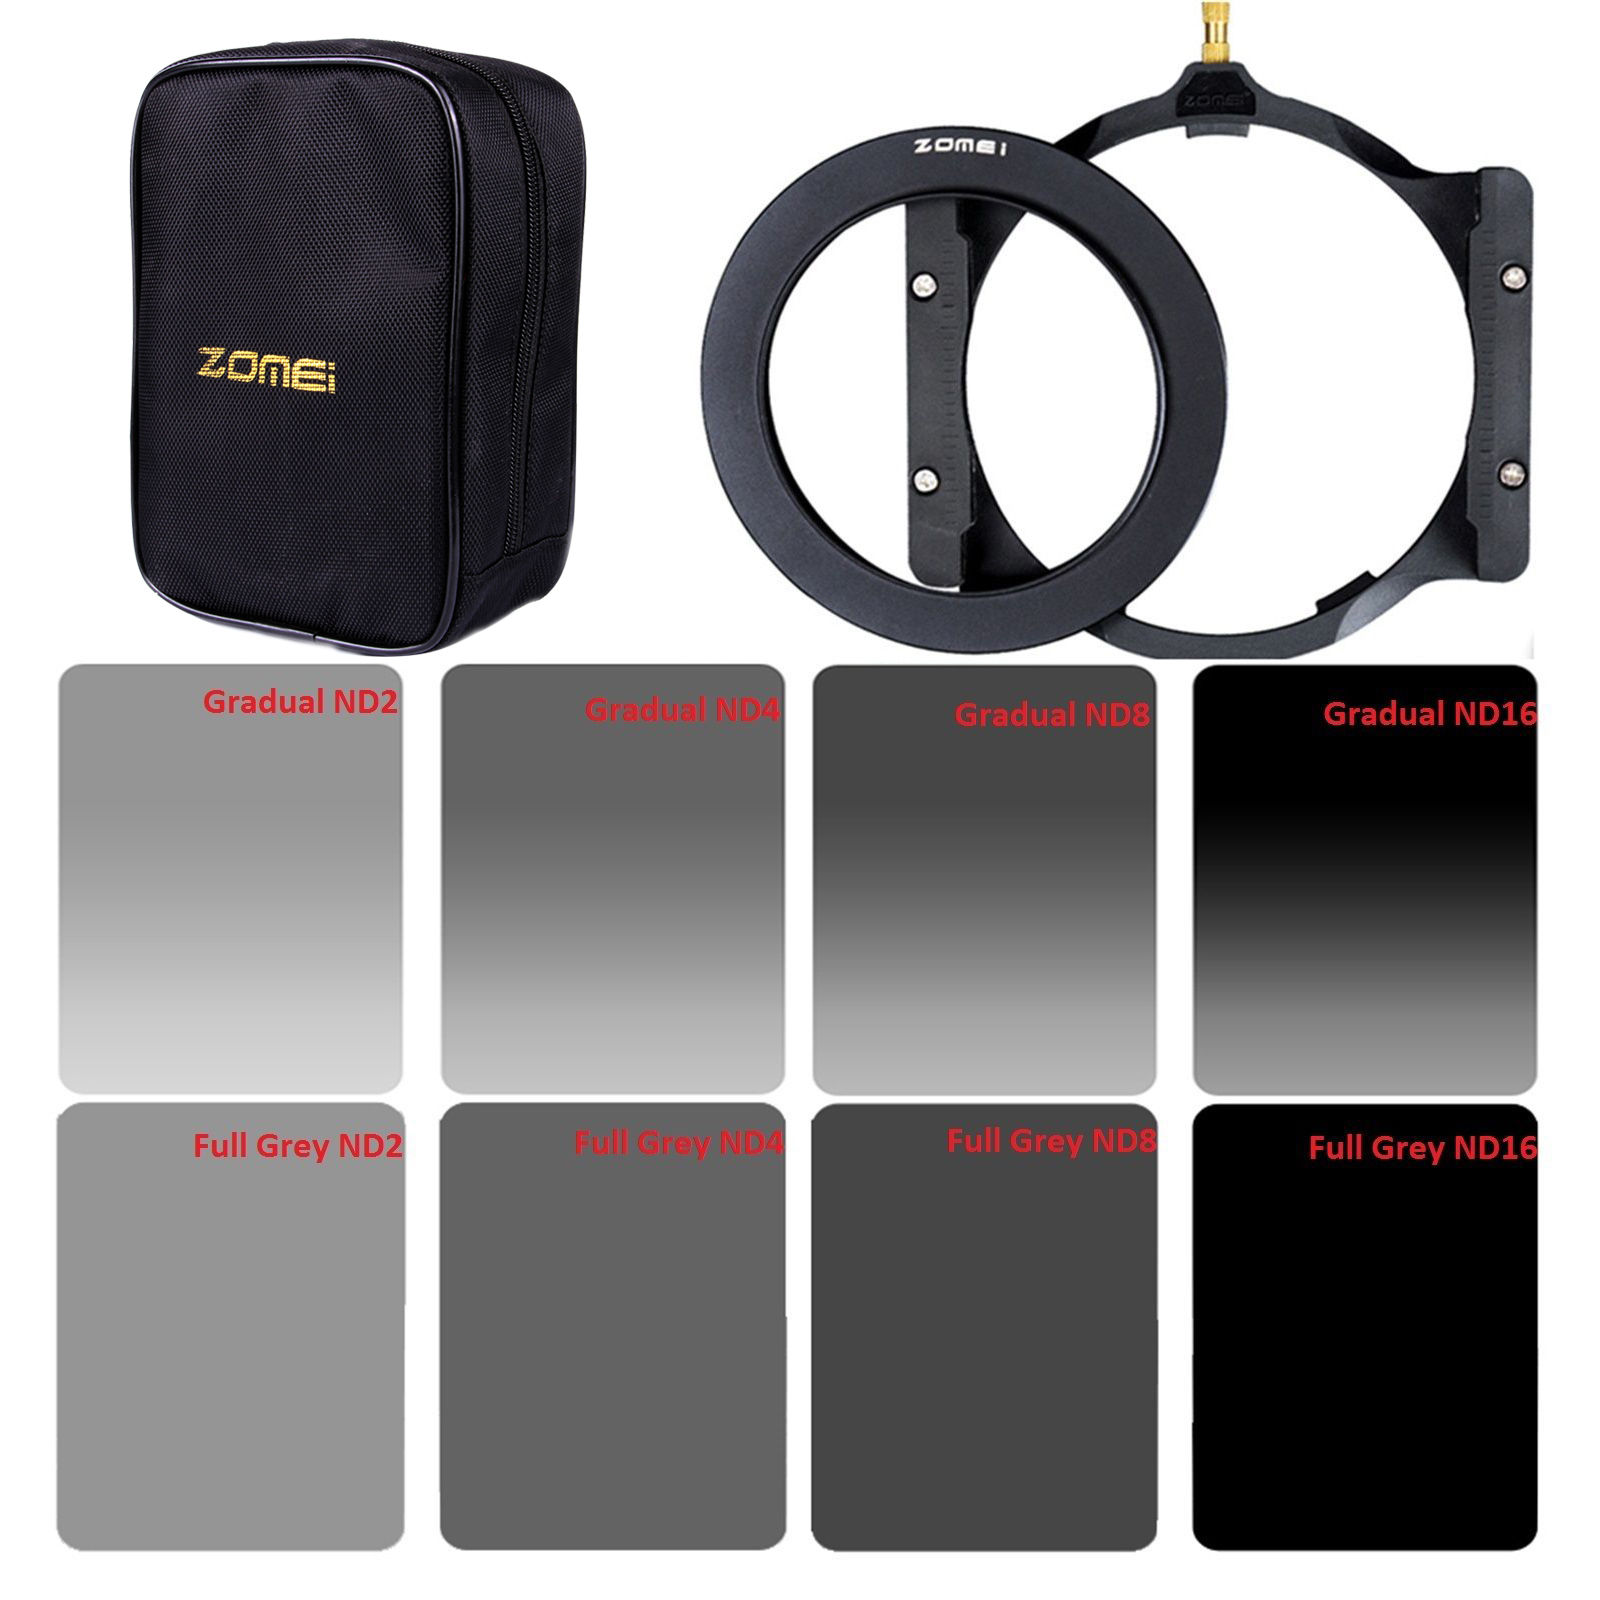 Zomei Square filter 150*100mm Complete&Graduated ND2 4 8 16 Neutral Density ND filter holder+67/72/77/82/86mm adapter zomei 6in1 filter kit 67mm ring holder 150x100mm gradual nd4 full nd2 nd4 nd8 neutral density square nd filter for cokin z